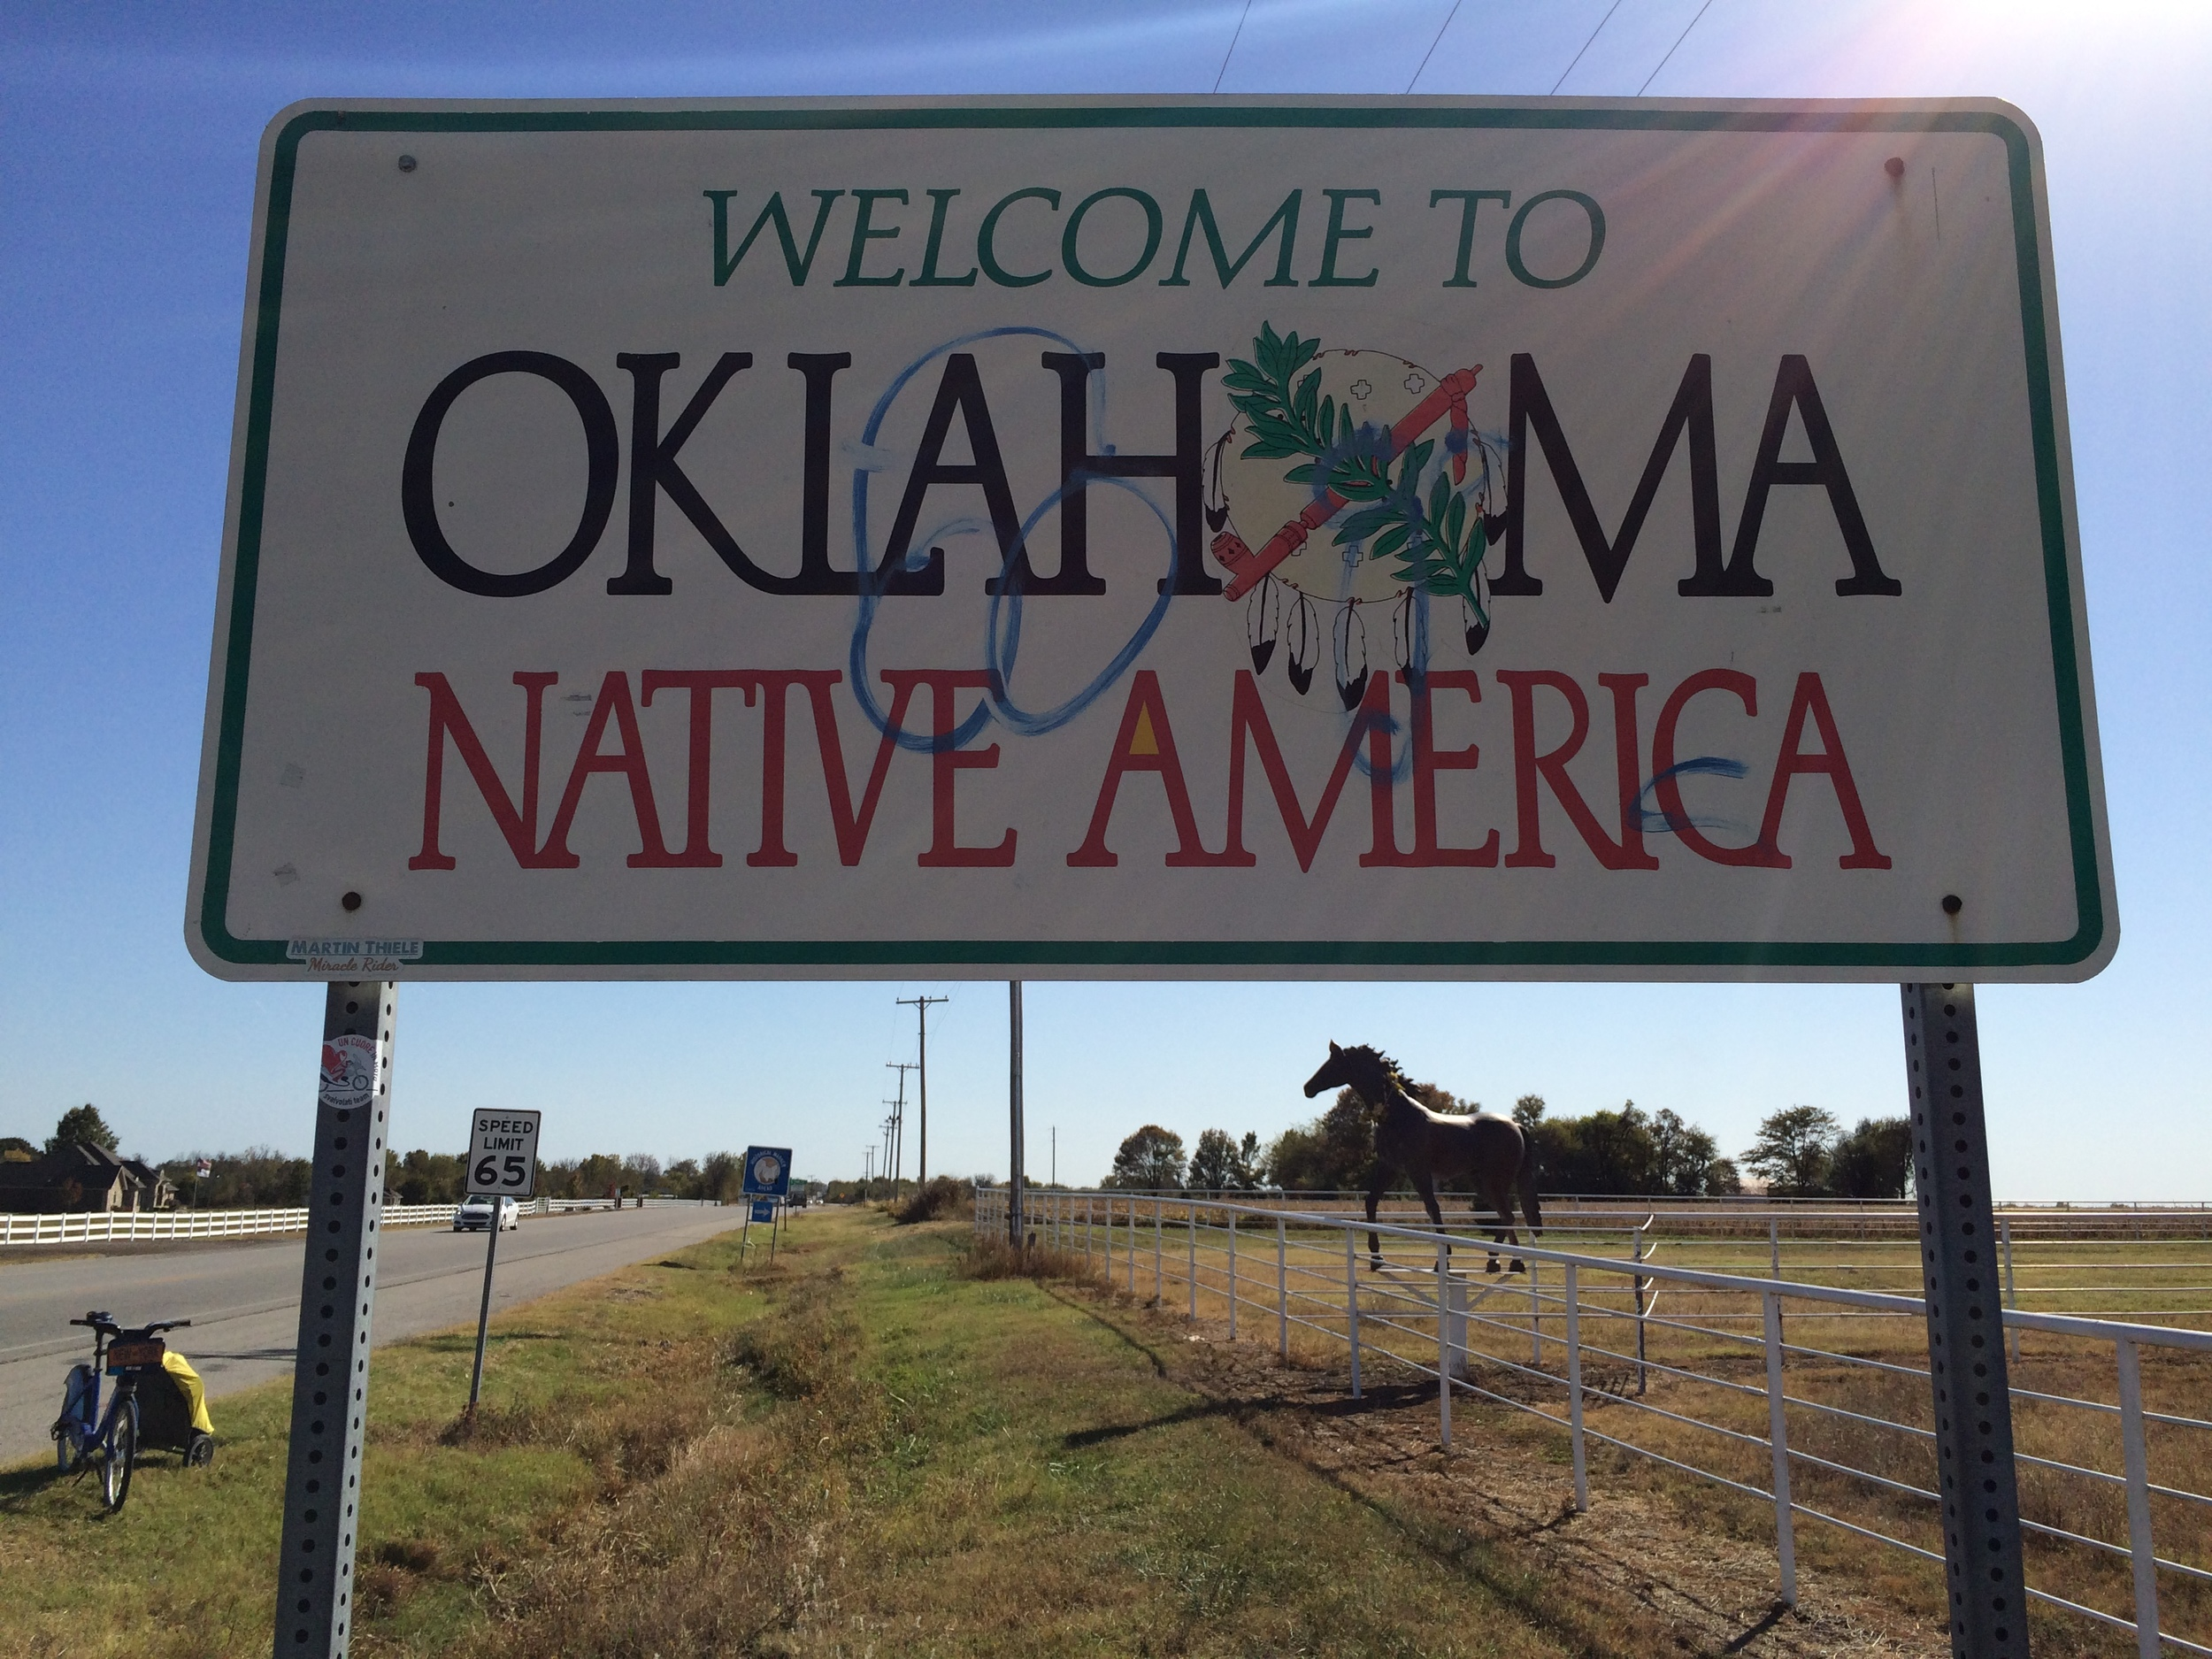 Oh hello, Oklahoma. We're gonna get along great.